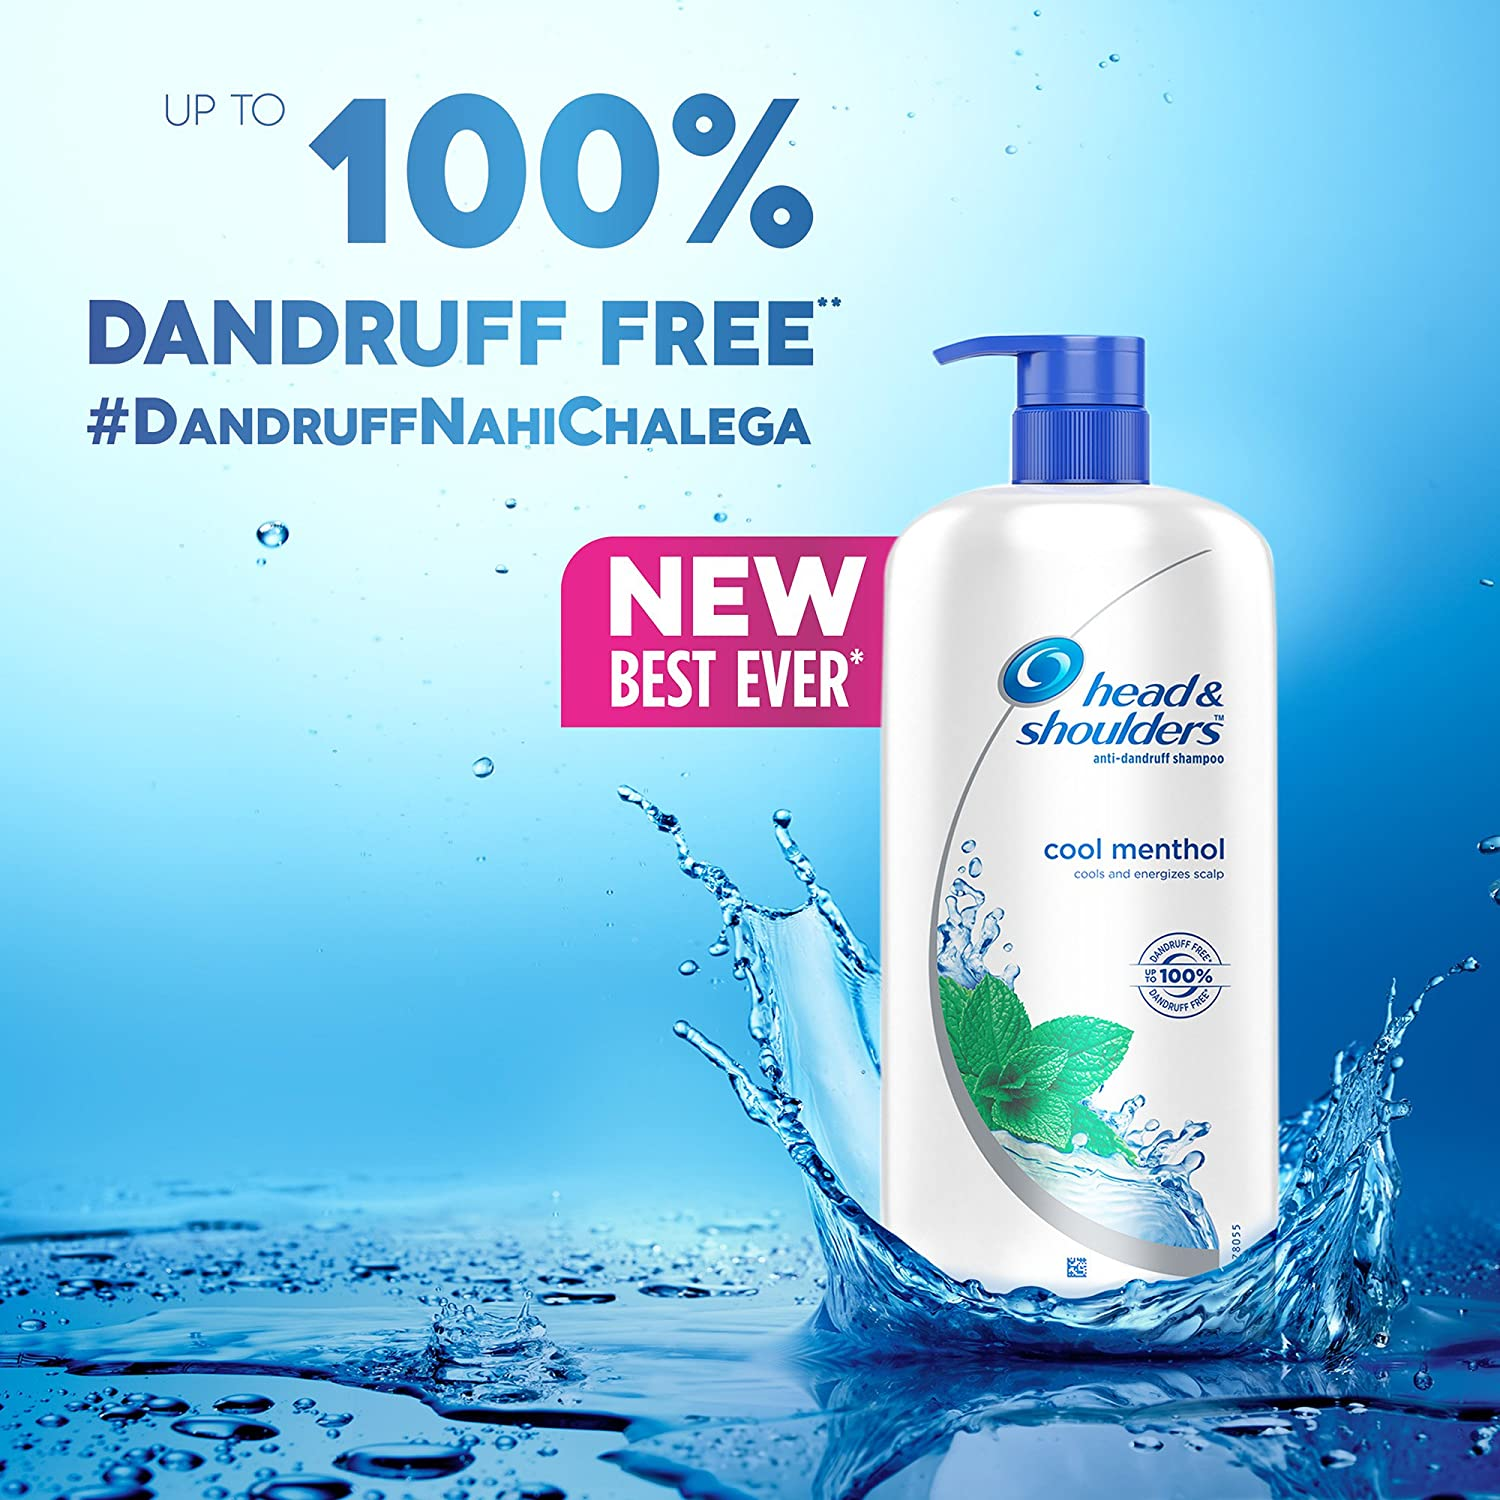 Head & Shoulders Anti-Dandruff Shampoo (Cool Menthol and Energizes Scalp) - 1L